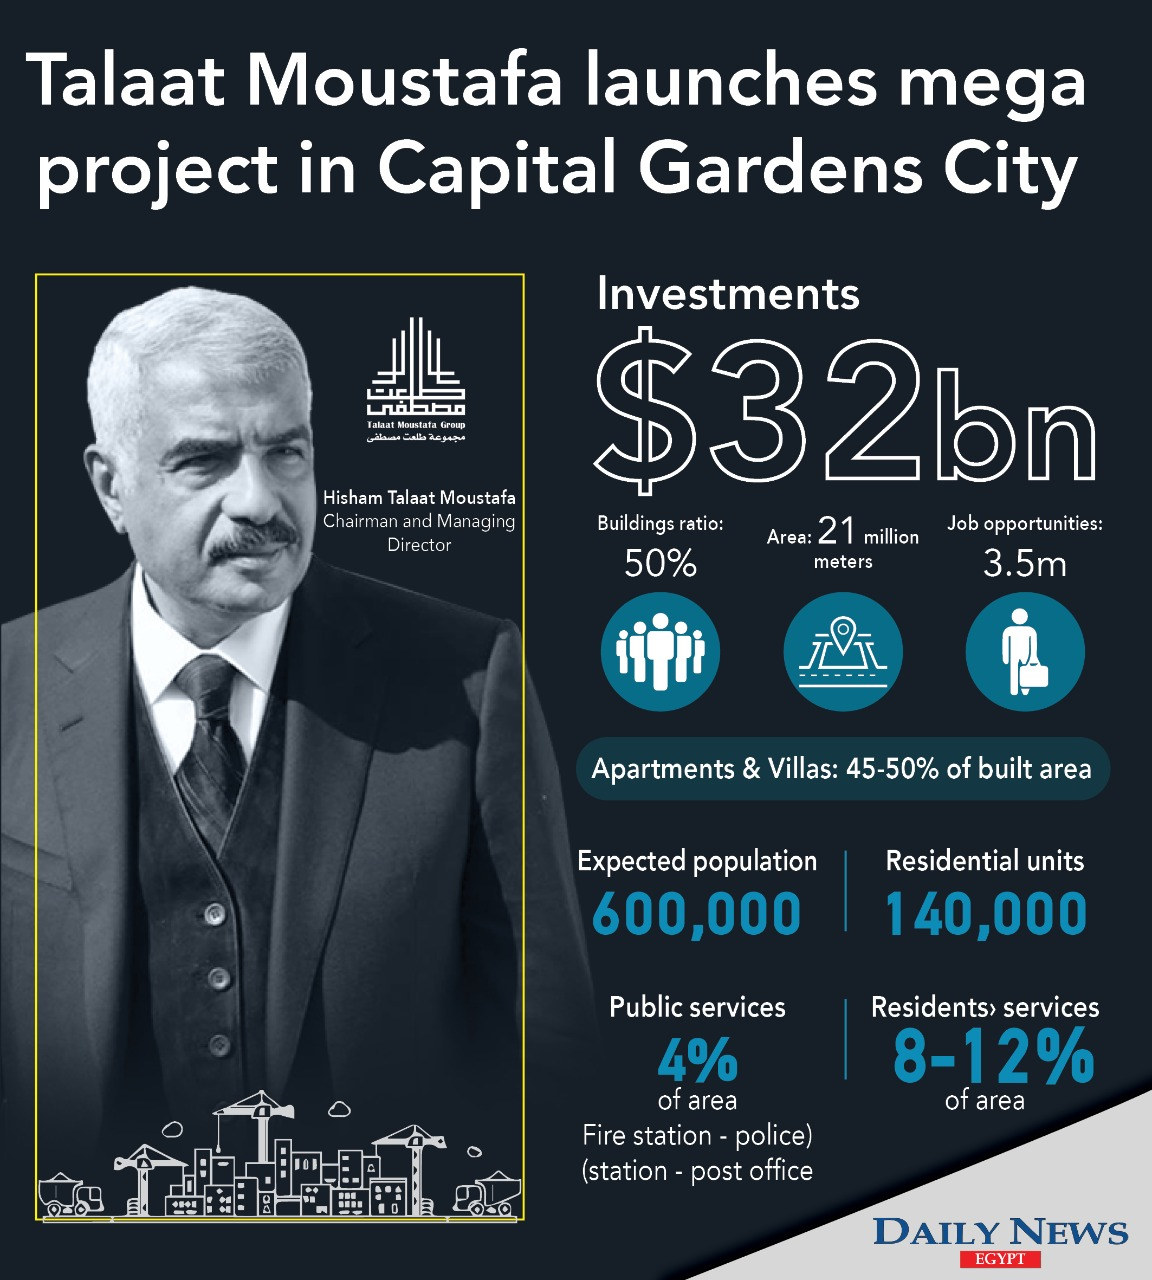 Hisham Talaat Moustafa, Chairperson and CEO of TMG, said the project will be established with EGP 500bn ($32bn) in investments, and will provide 3.5m direct and indirect job opportunities.